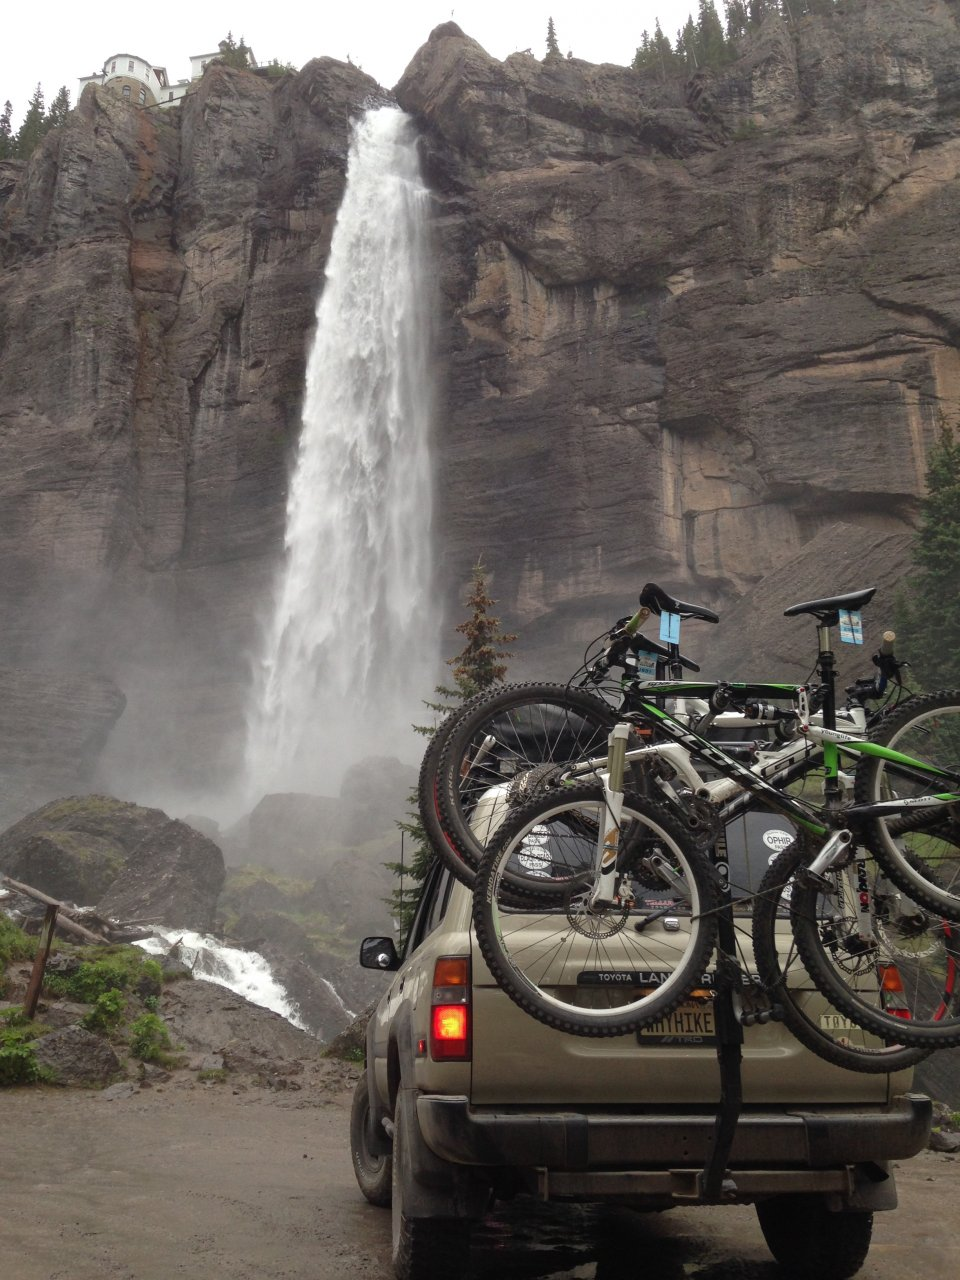 What Hitch Moint Bike Rack Are You Using? | IH8MUD Forum